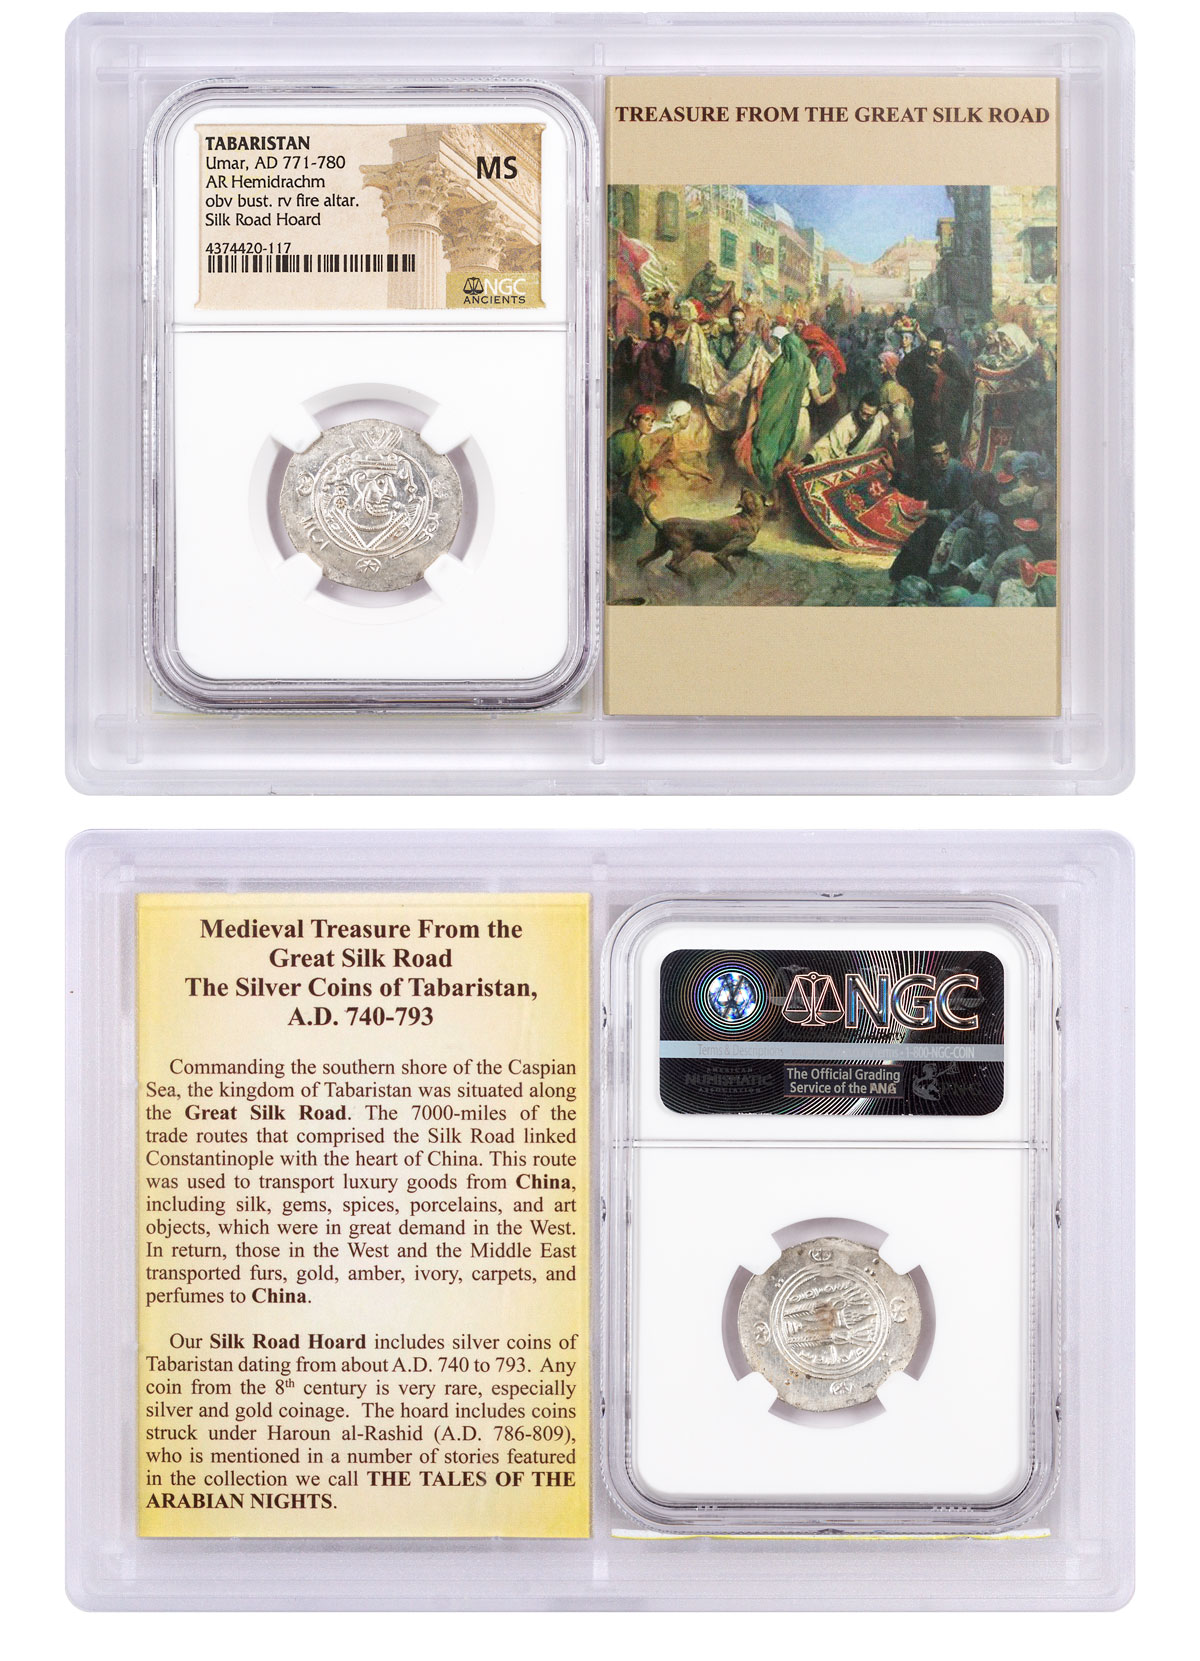 Tabaristan, Silver Hemidrachm of Umar (AD 771-780) - obv. Bust/rv. Fire Altar - Silk Road Hoard NGC MS (Story Vault)